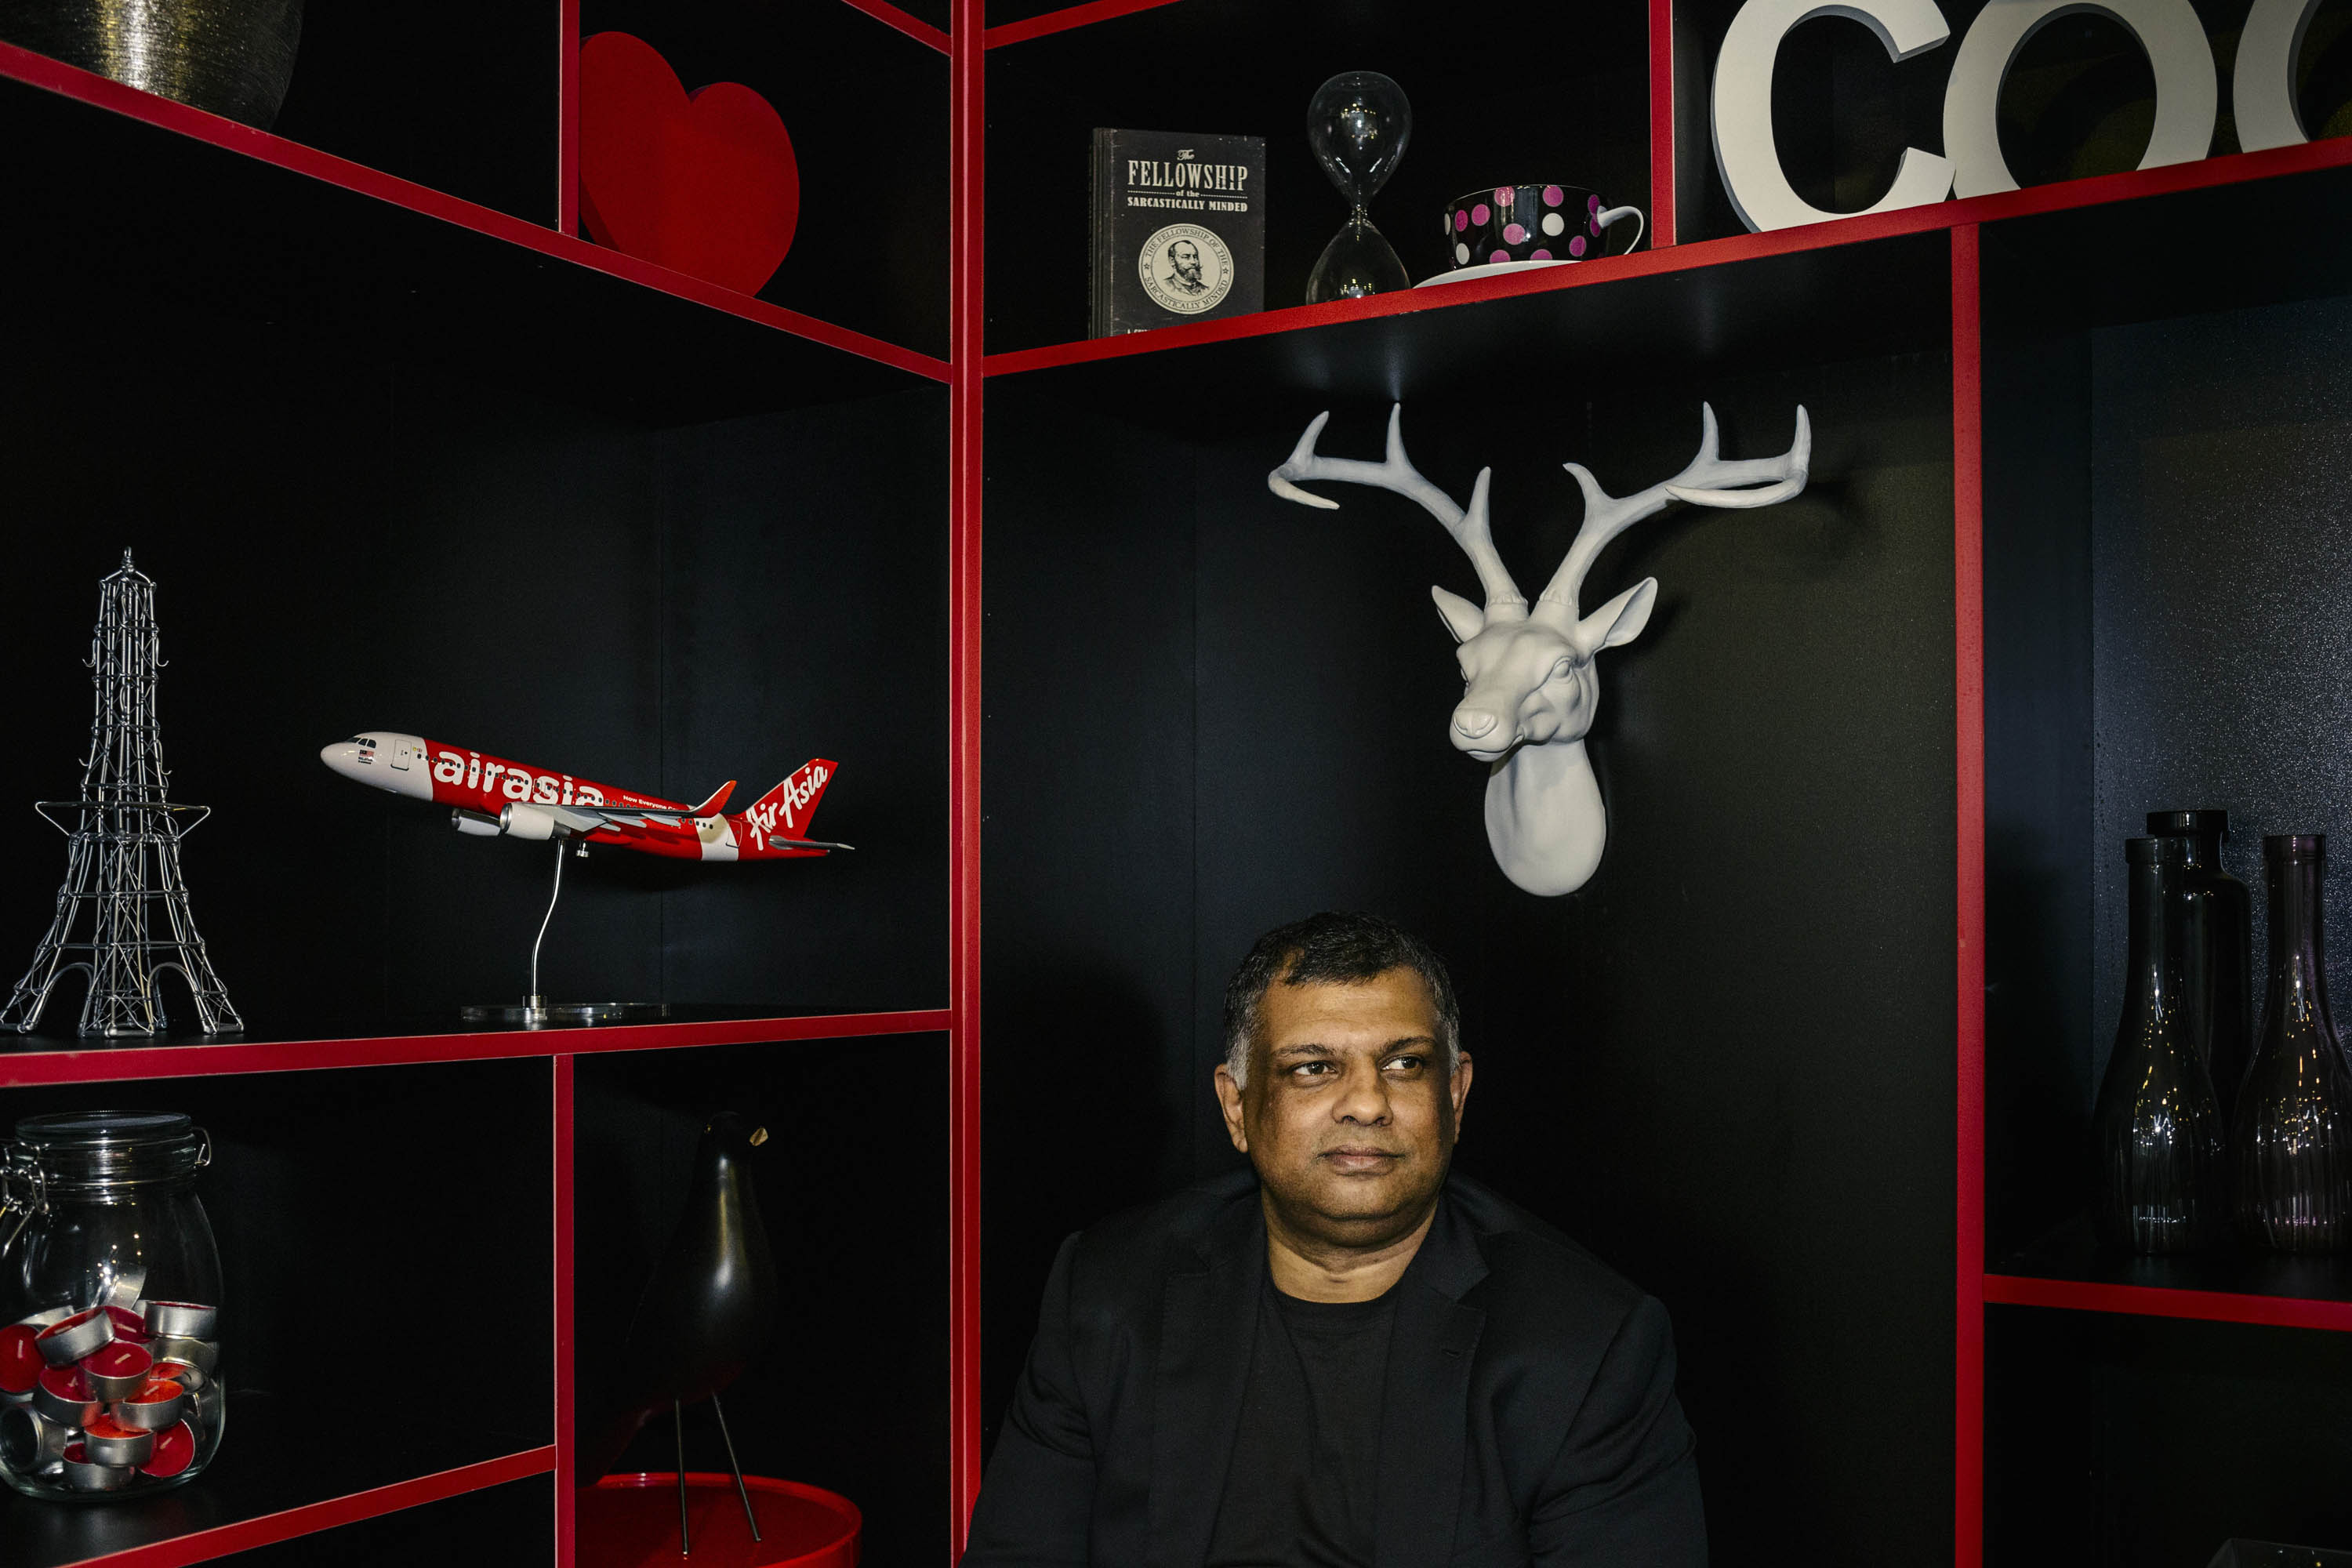 Tony Fernandes is building a budget airline that can knit together Southeast Asia.